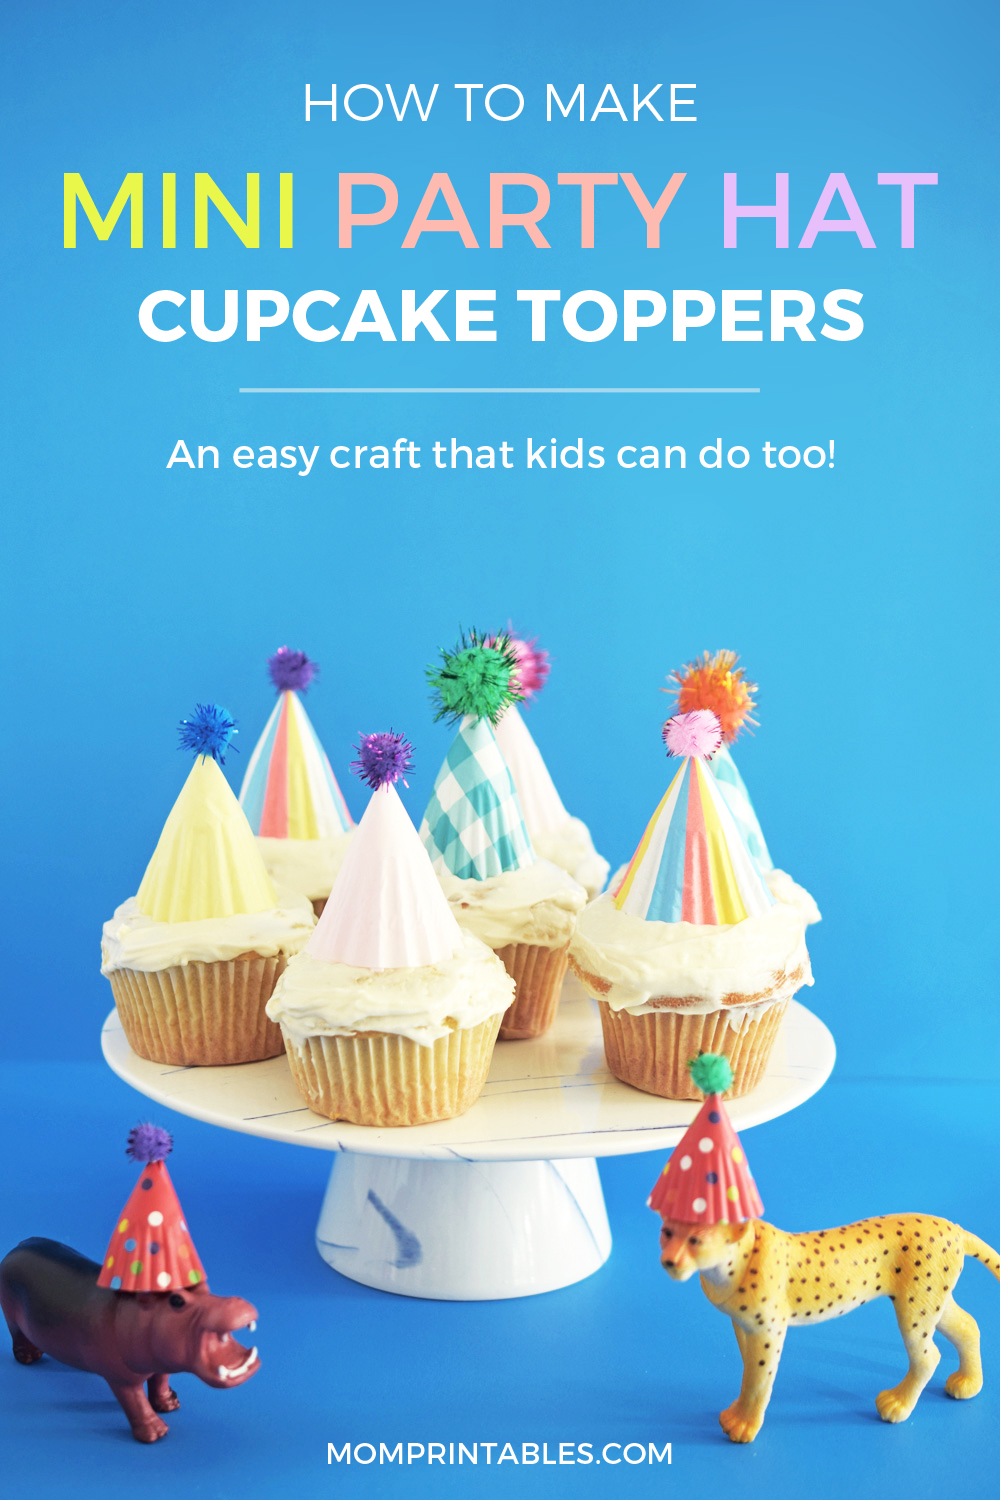 Mini Party Hat Cupcake Toppers DIY for Pinterest